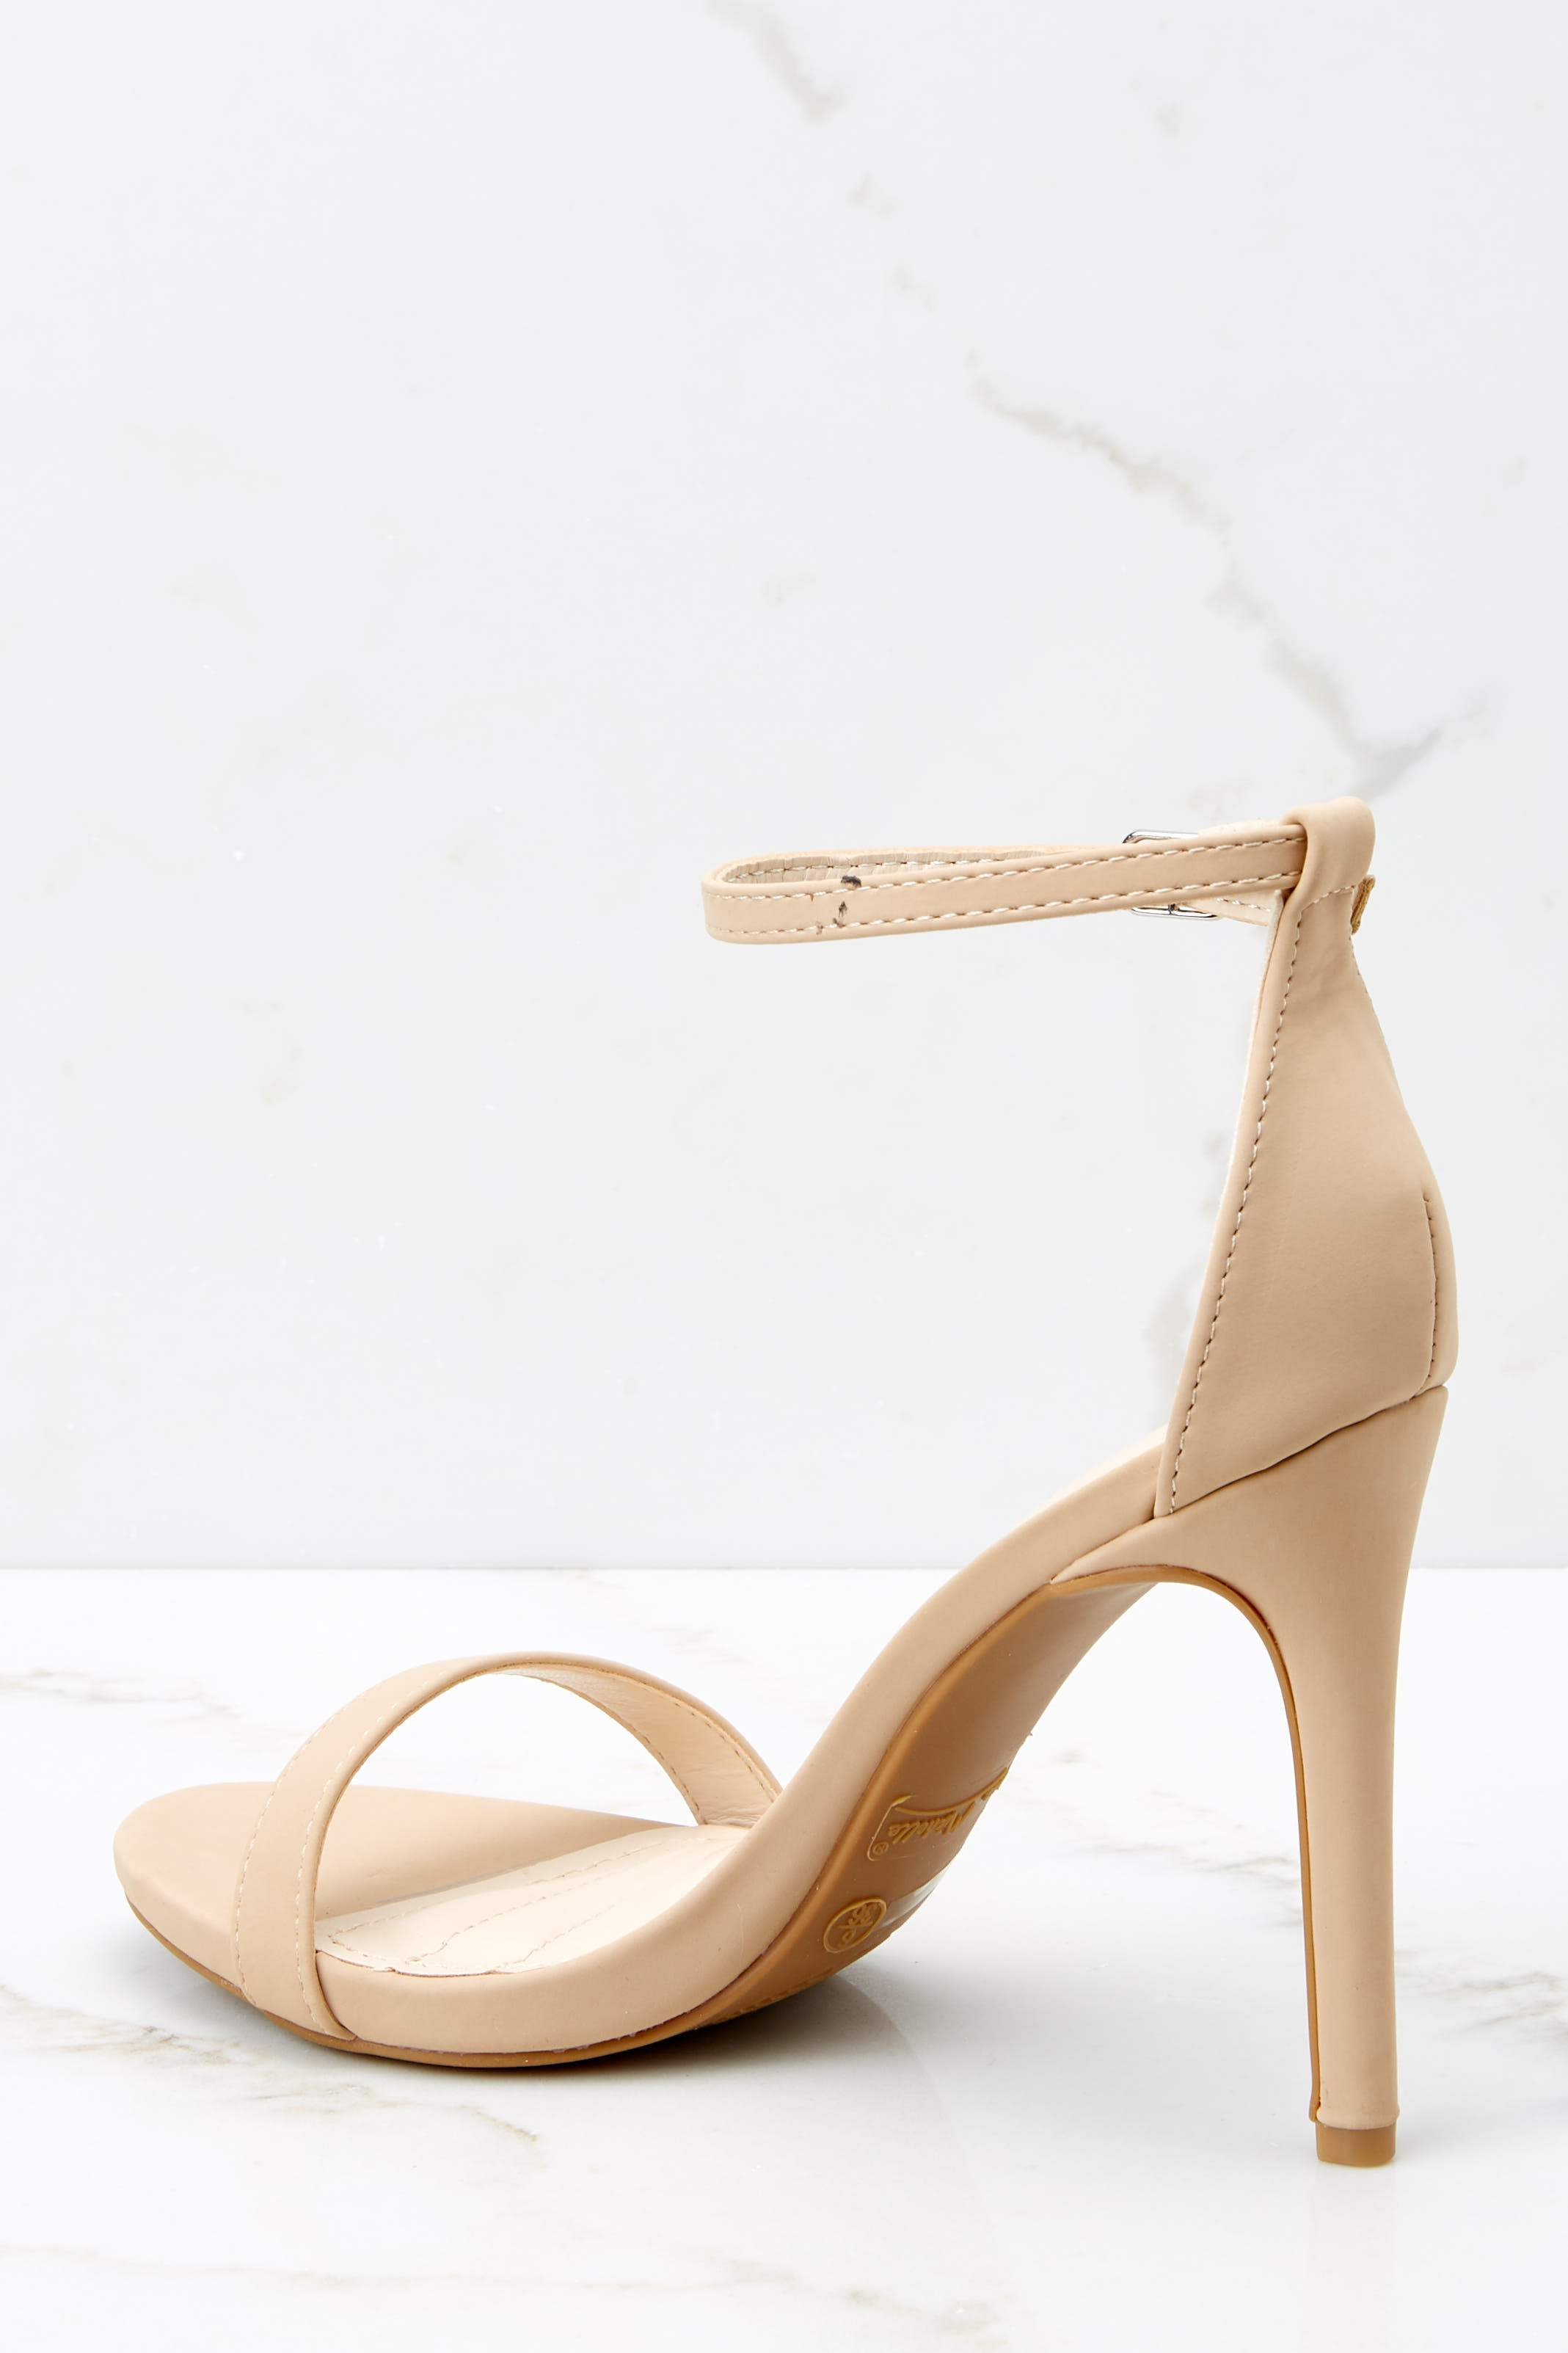 It's Your Moment Nude Ankle Strap Heels